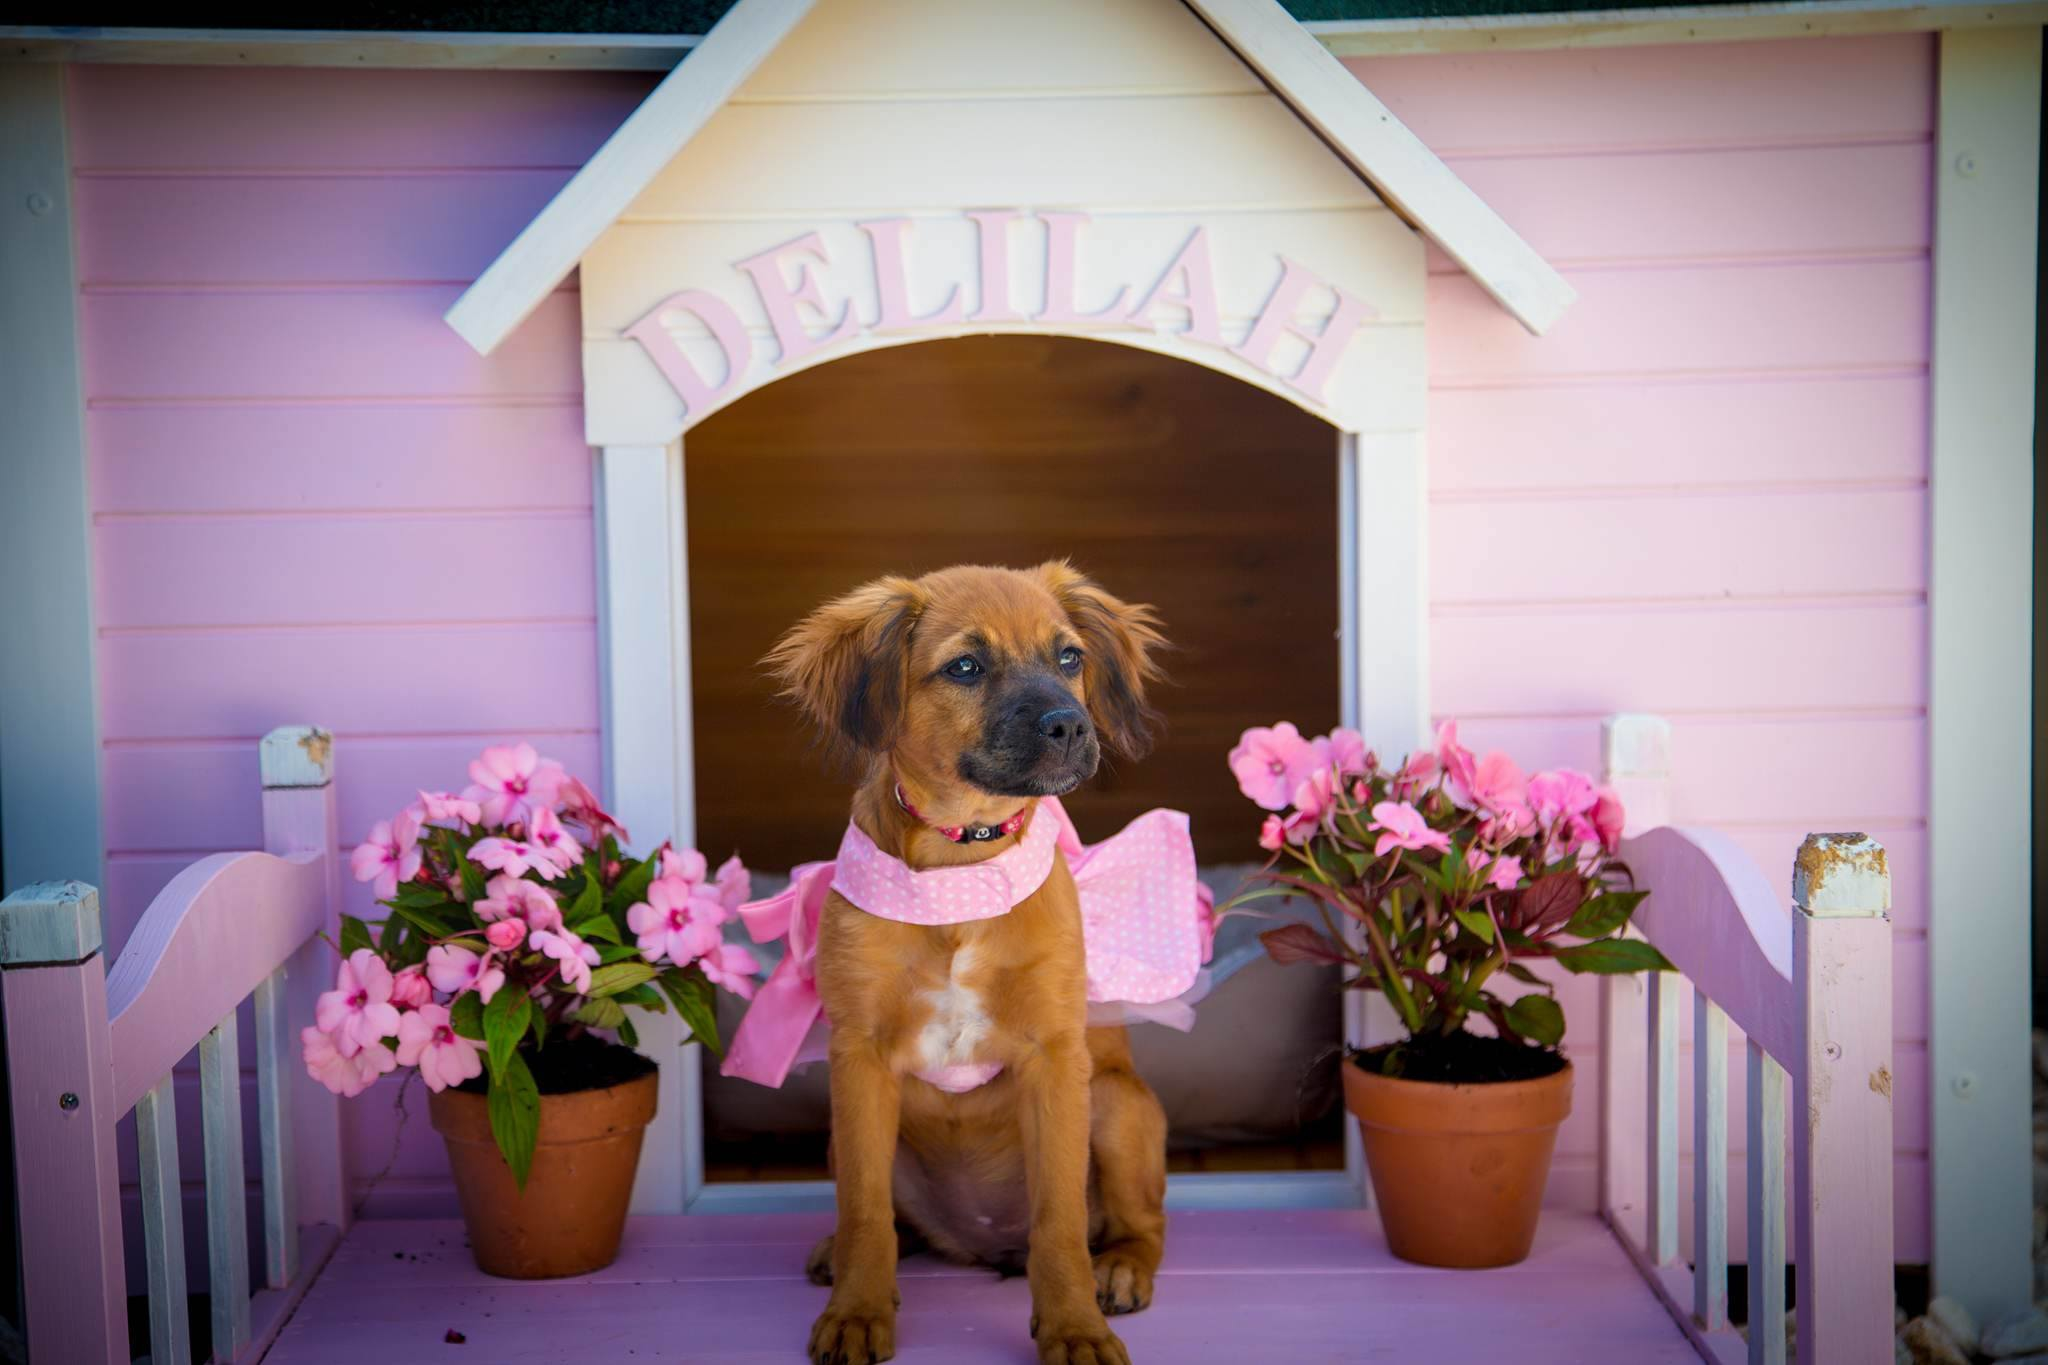 Princess Delilah's Kennel